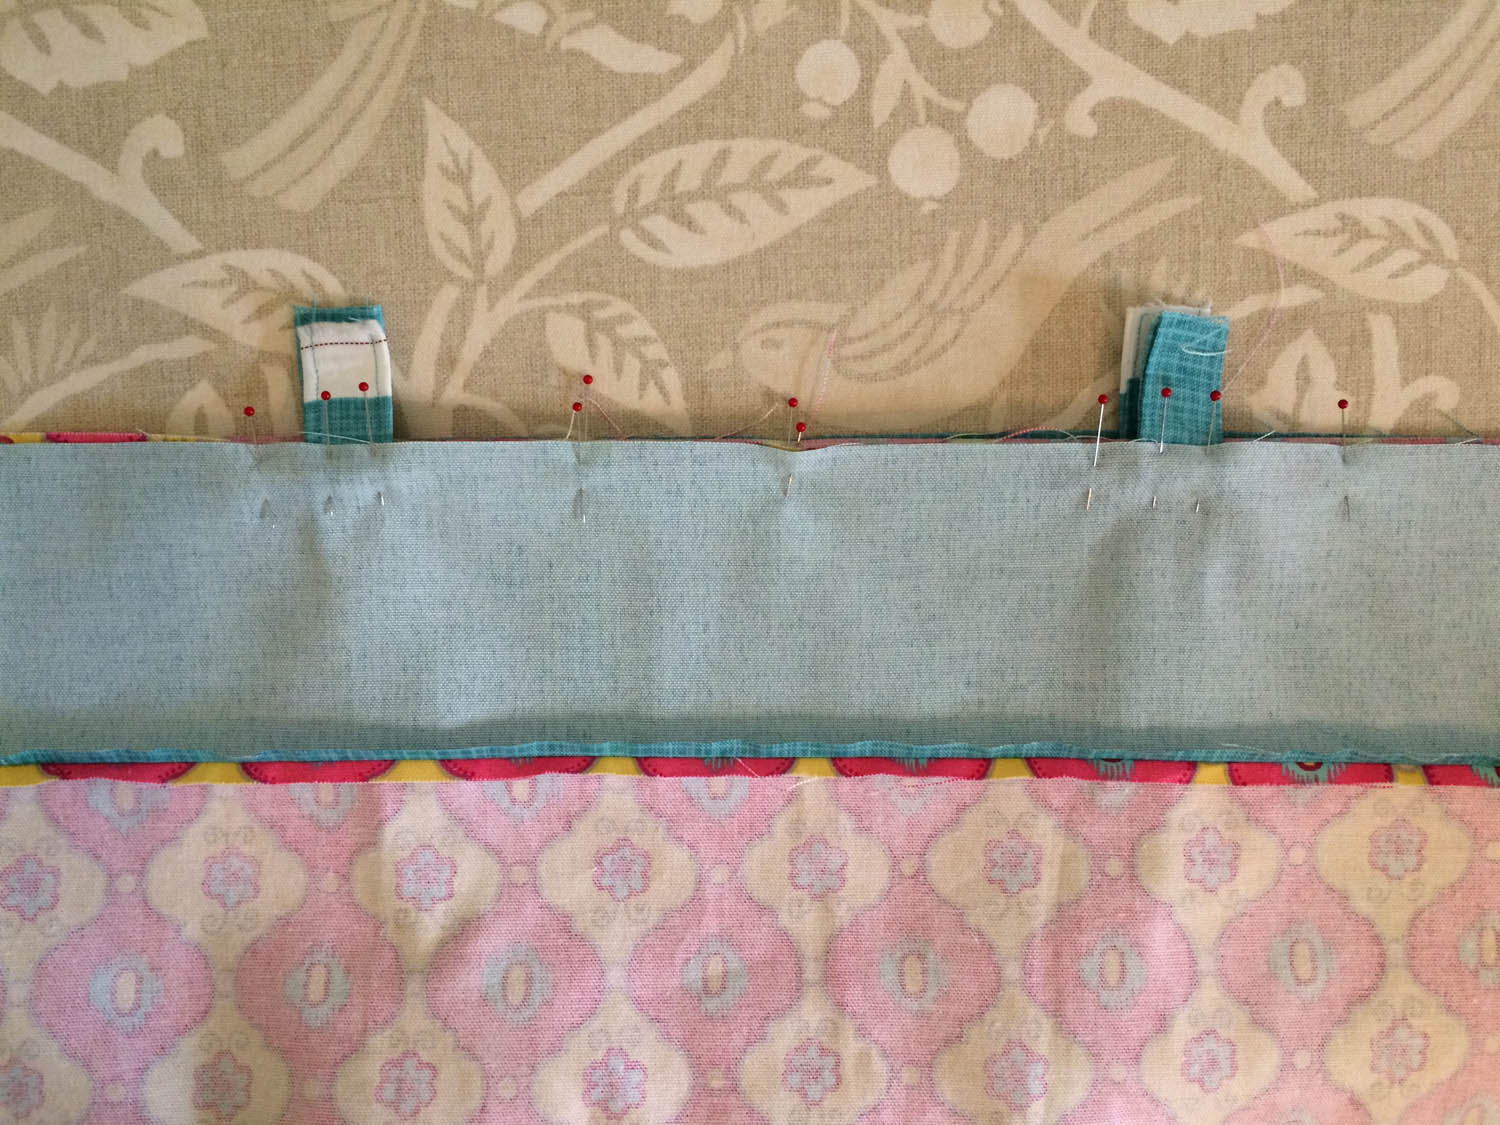 pinning outer tote to lining along top edge of tote